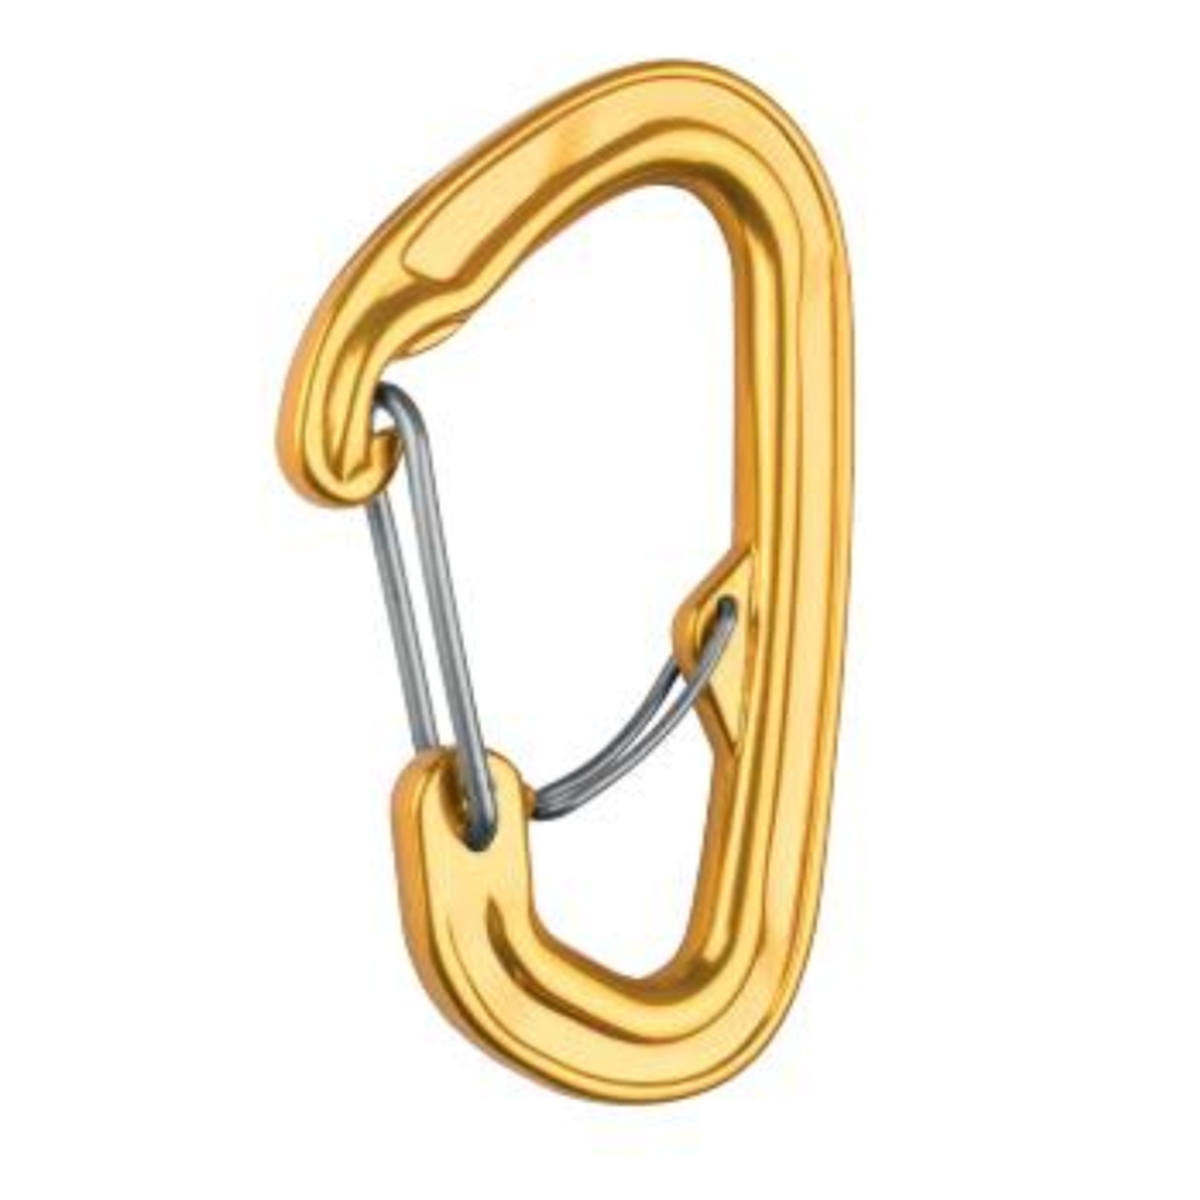 Grivel Plume Captive Wire Non Locking Carabiners